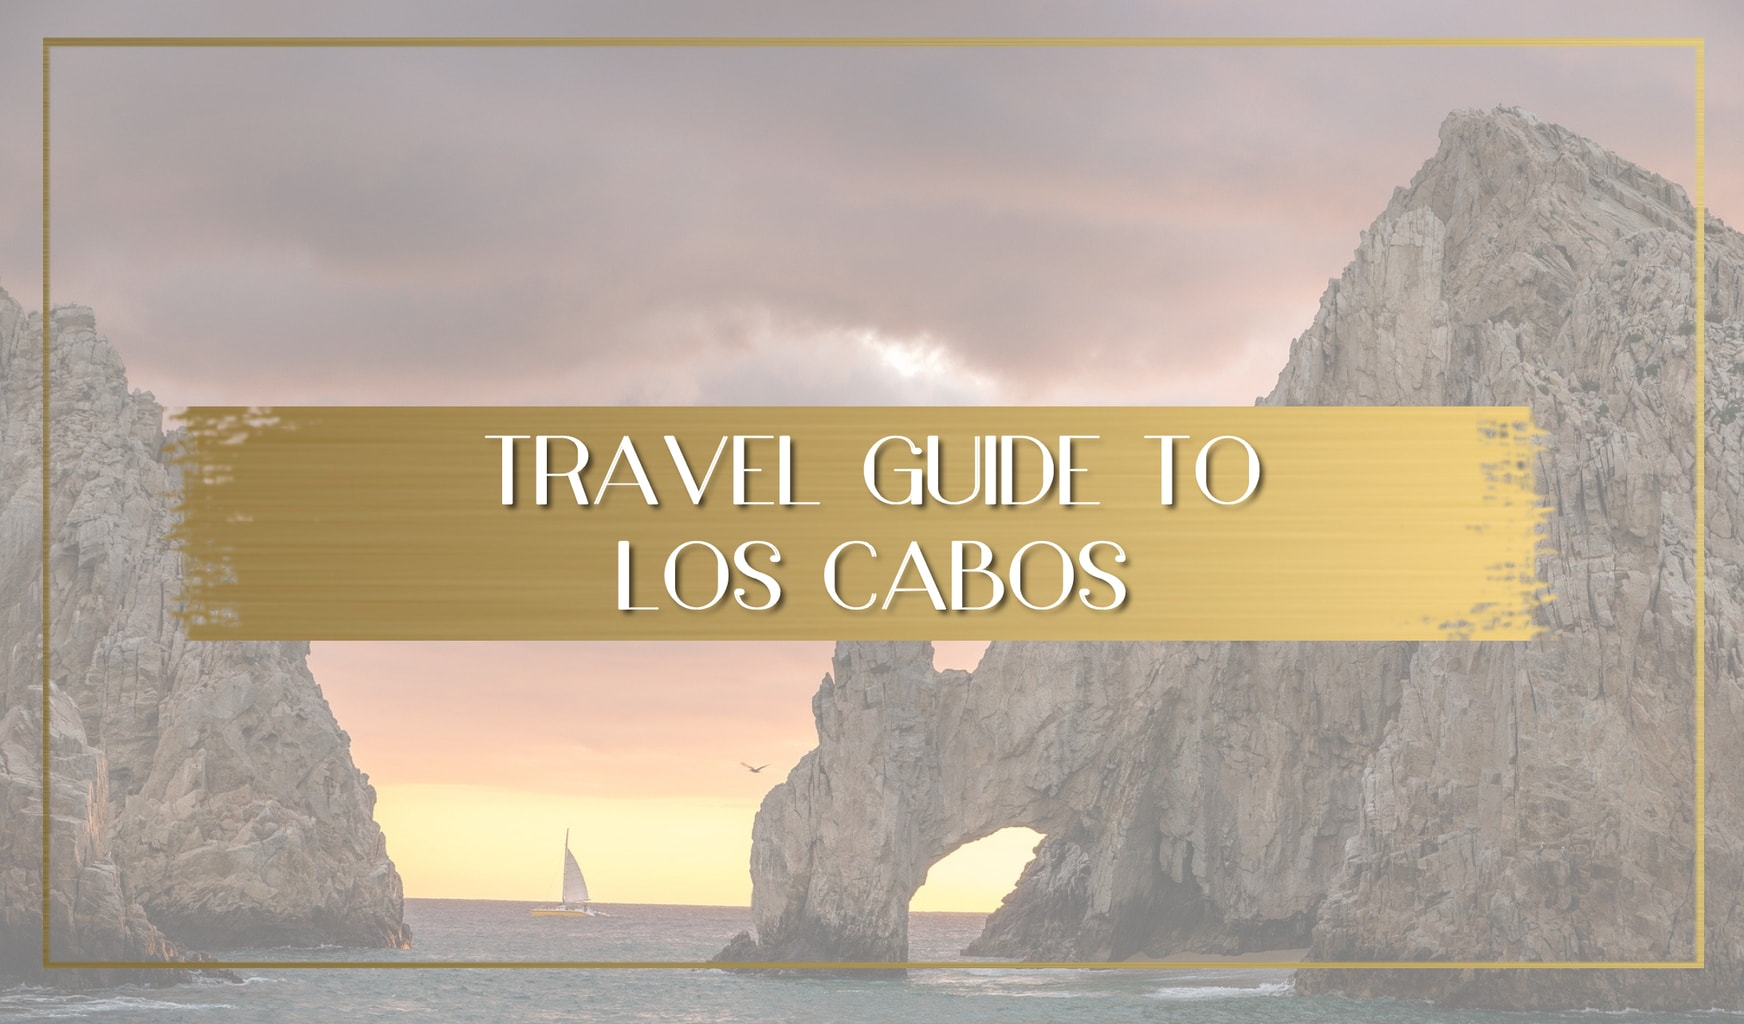 Travel Guide to Los Cabos main